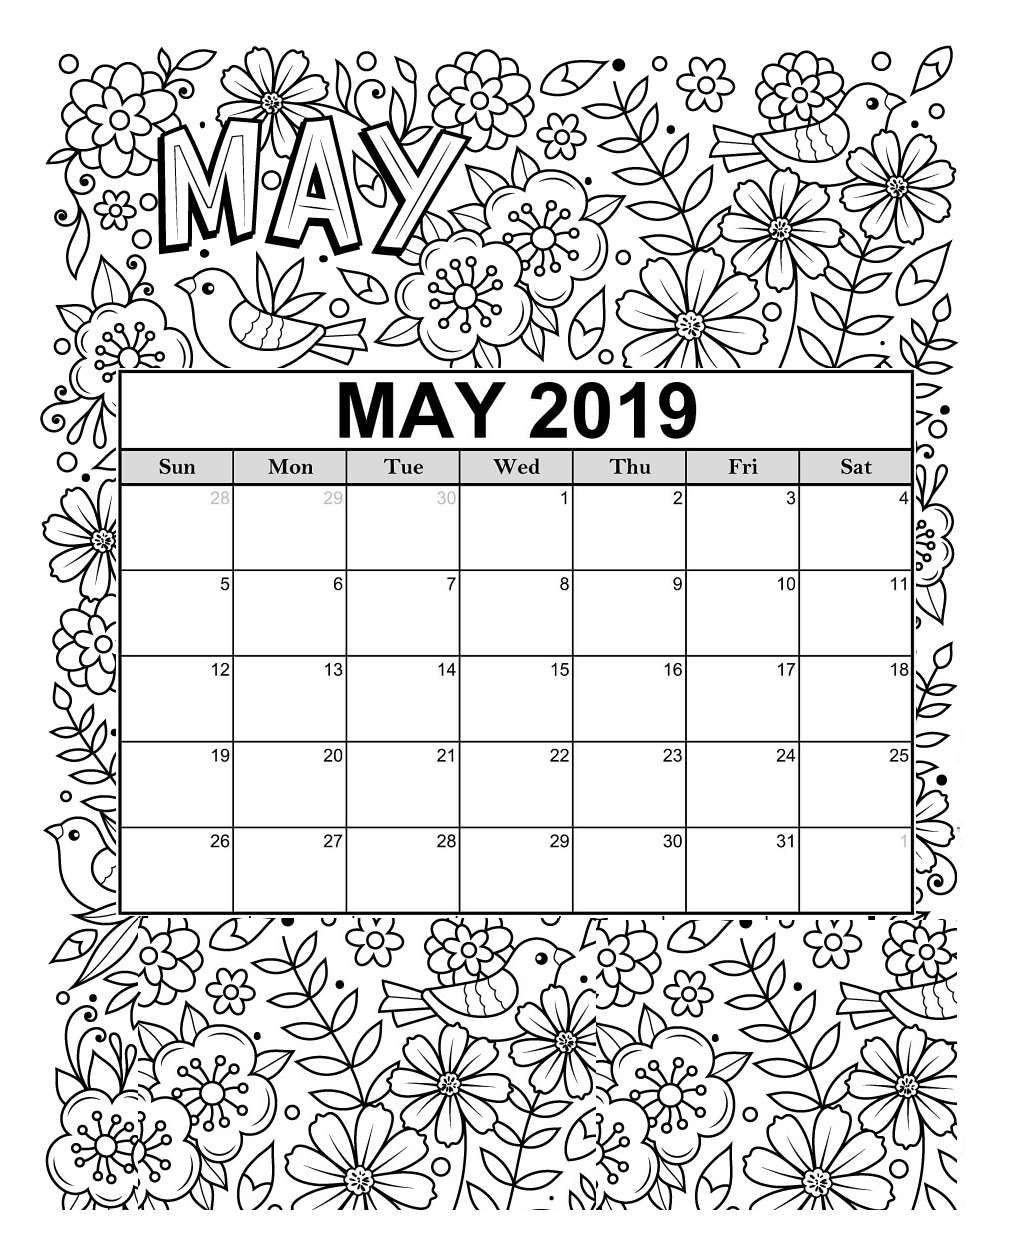 2019 Coloring Pages For Kids  Free 2019 Printable Coloring Calendar Pages